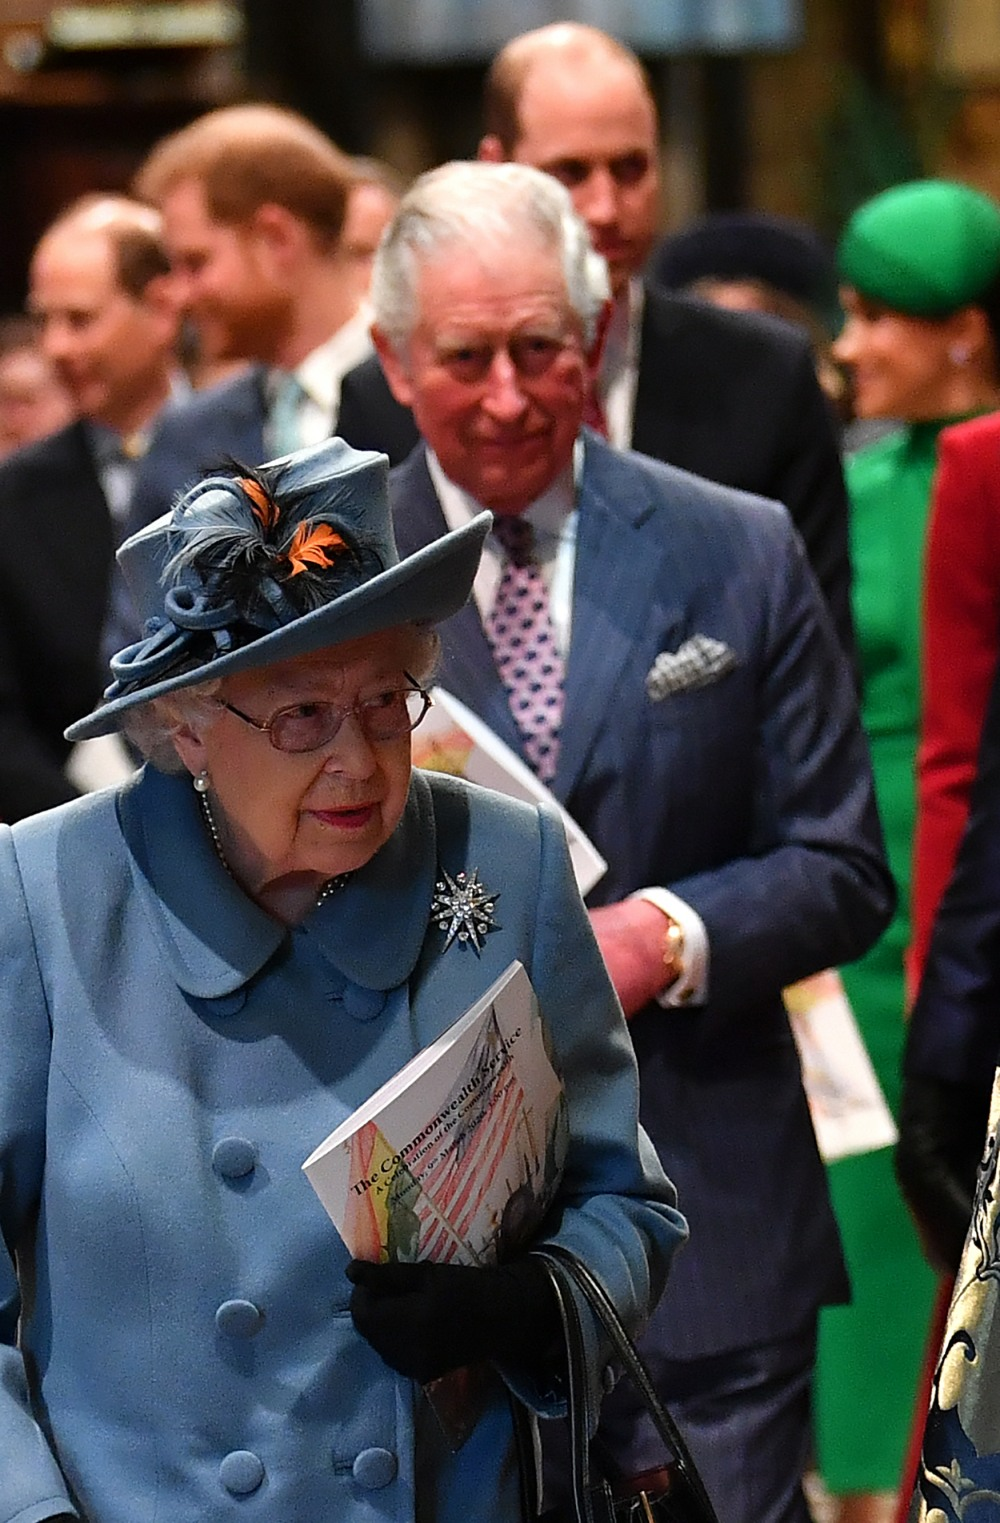 Britain's Queen Elizabeth II (C), followed by Britain's Prince Edward, Earl of Wessex (L), Britain's Prince Harry, Duke of Sussex (2L), Britain's Prince Charles, Prince of Wales (centre R), Britain's Prince William, Duke of Cambridge, (2R) and Meghan, Duch